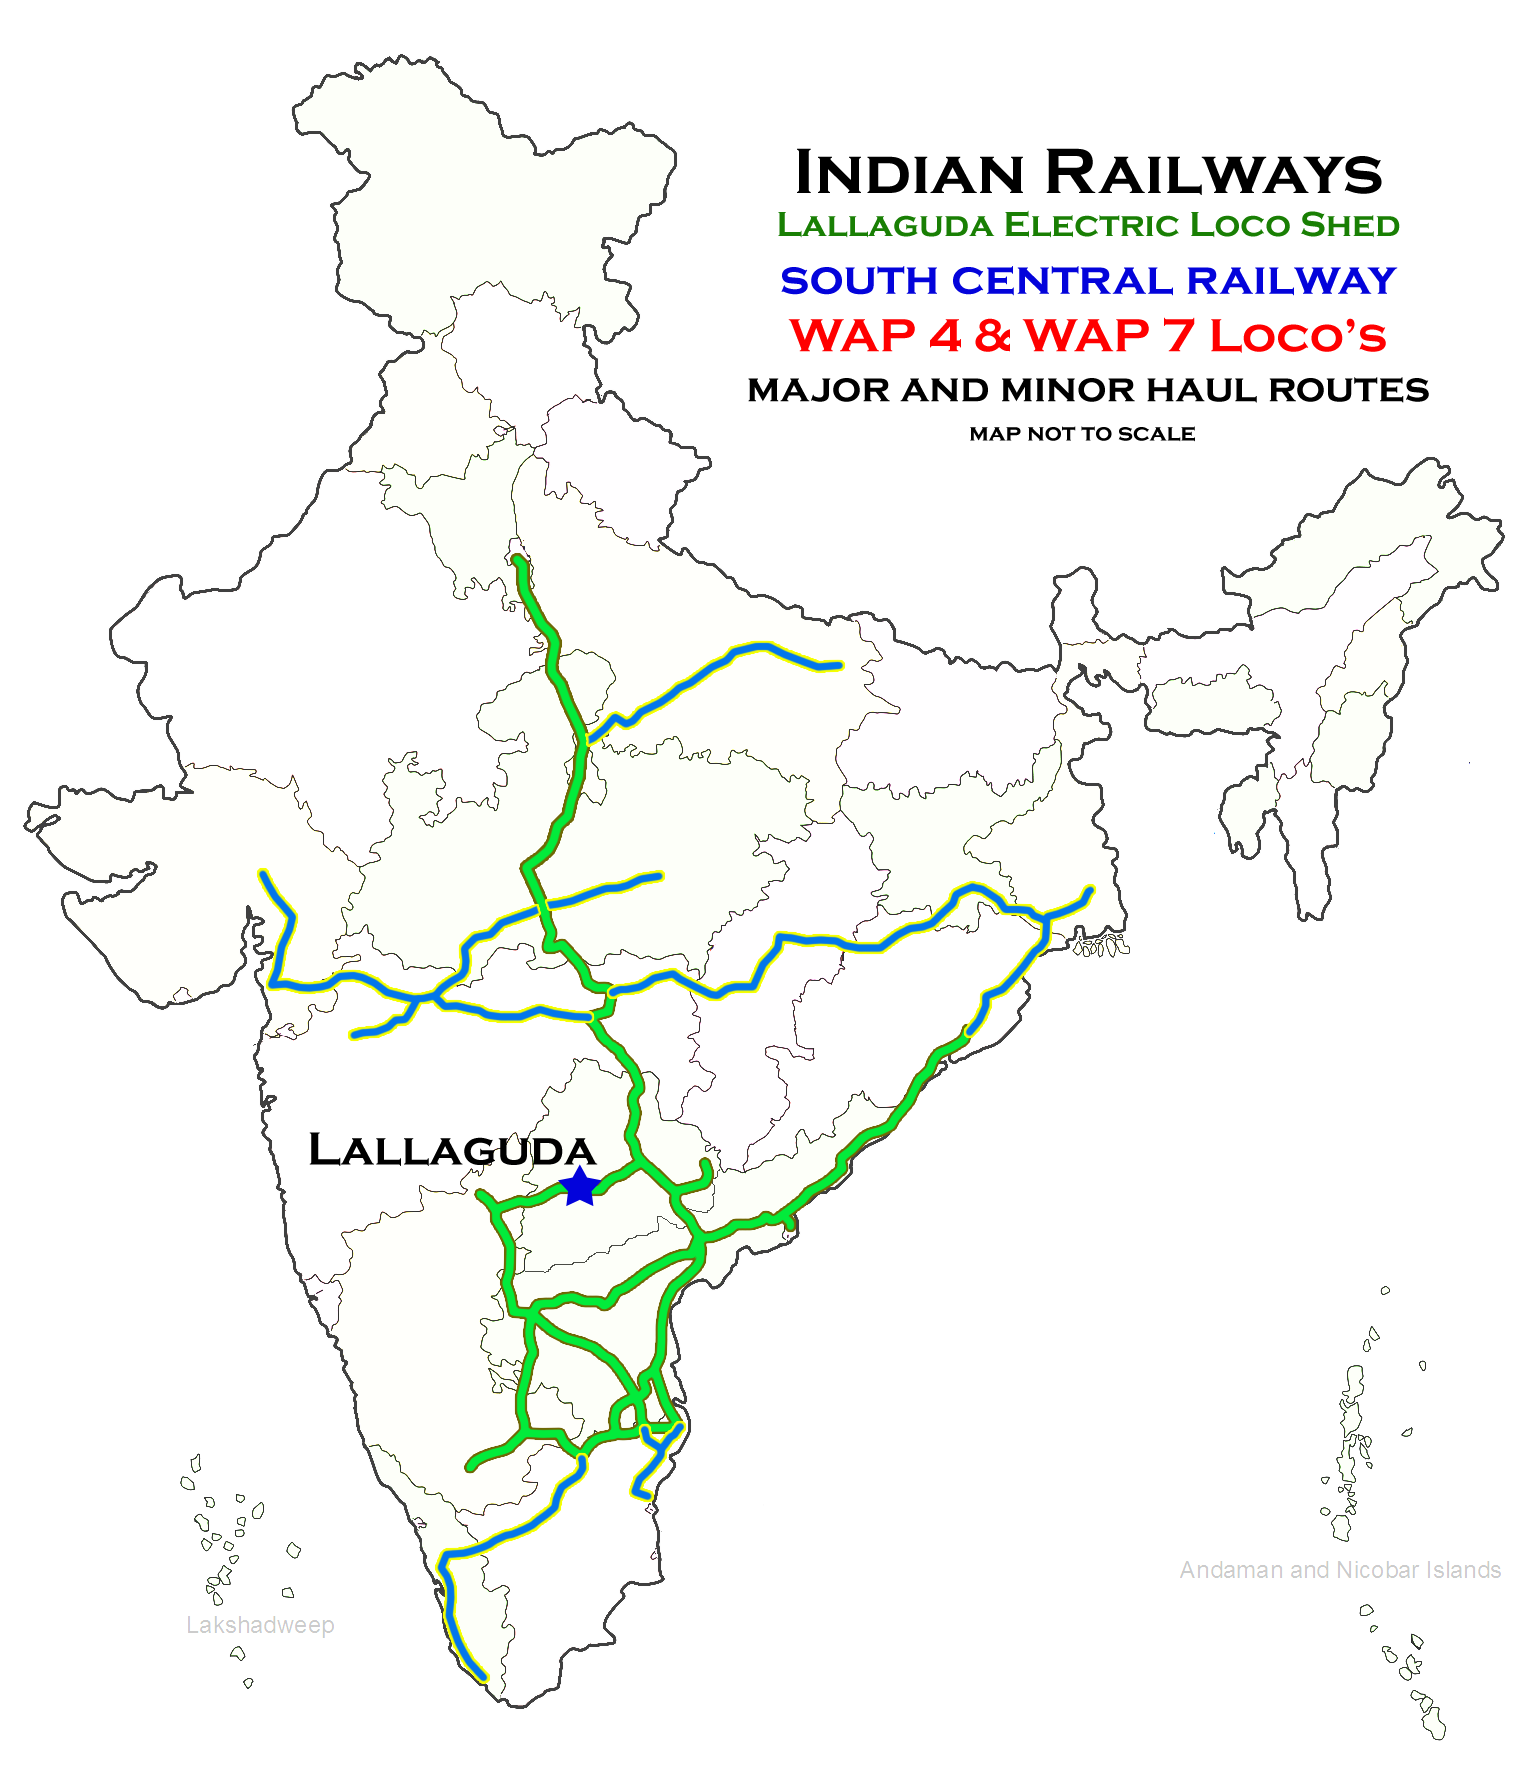 Route haul map of LGD ELS